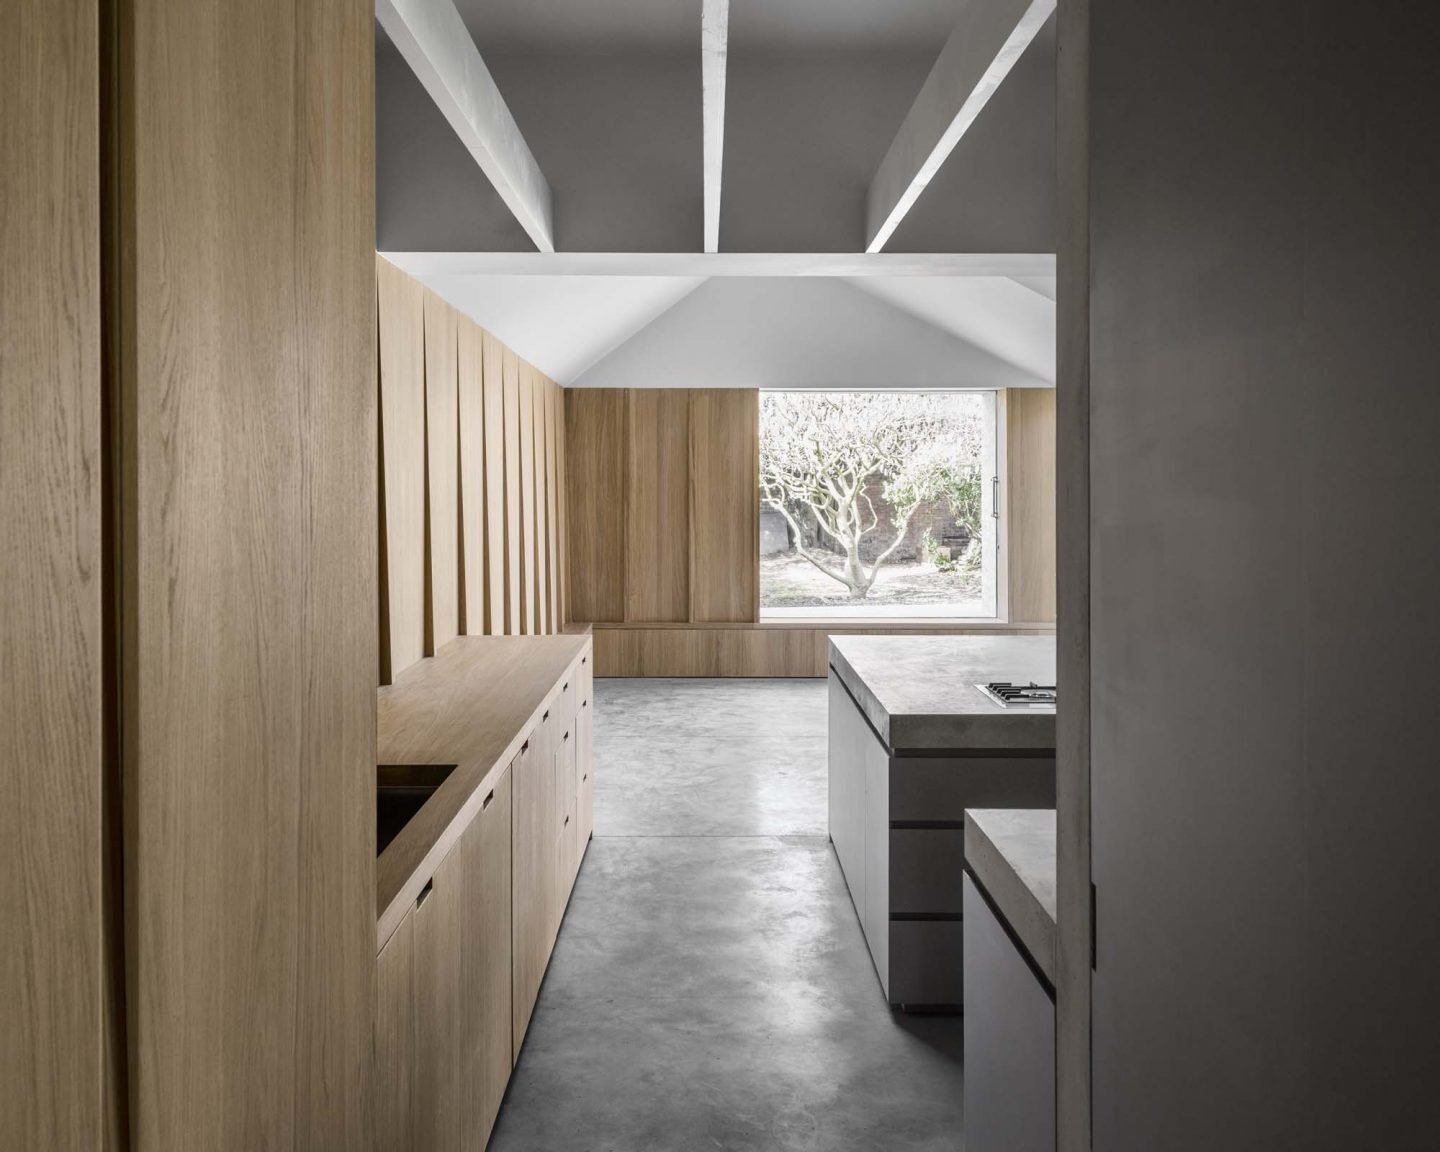 IGNANT-Architecture-Kew-Road-McLaren-Excell-13